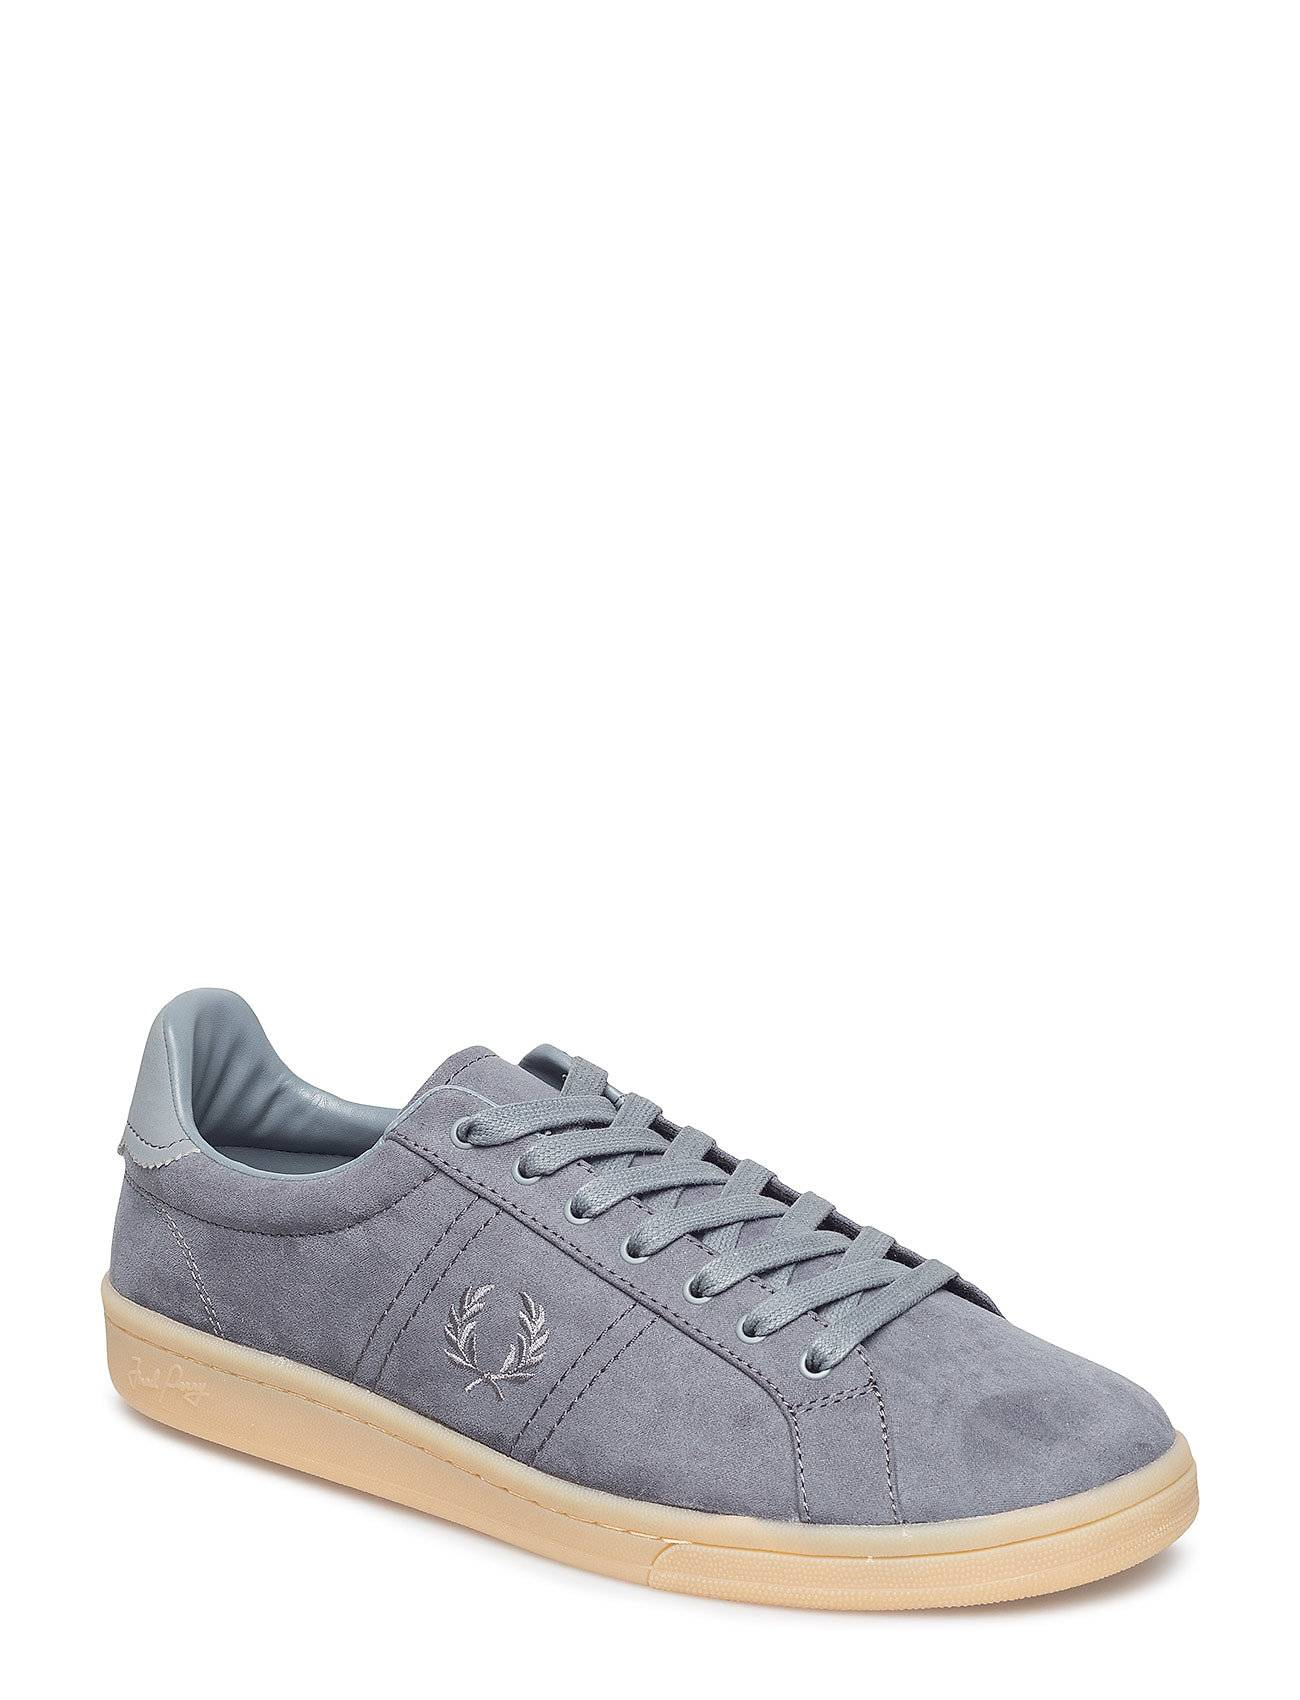 Fred Perry B721 Microfibre